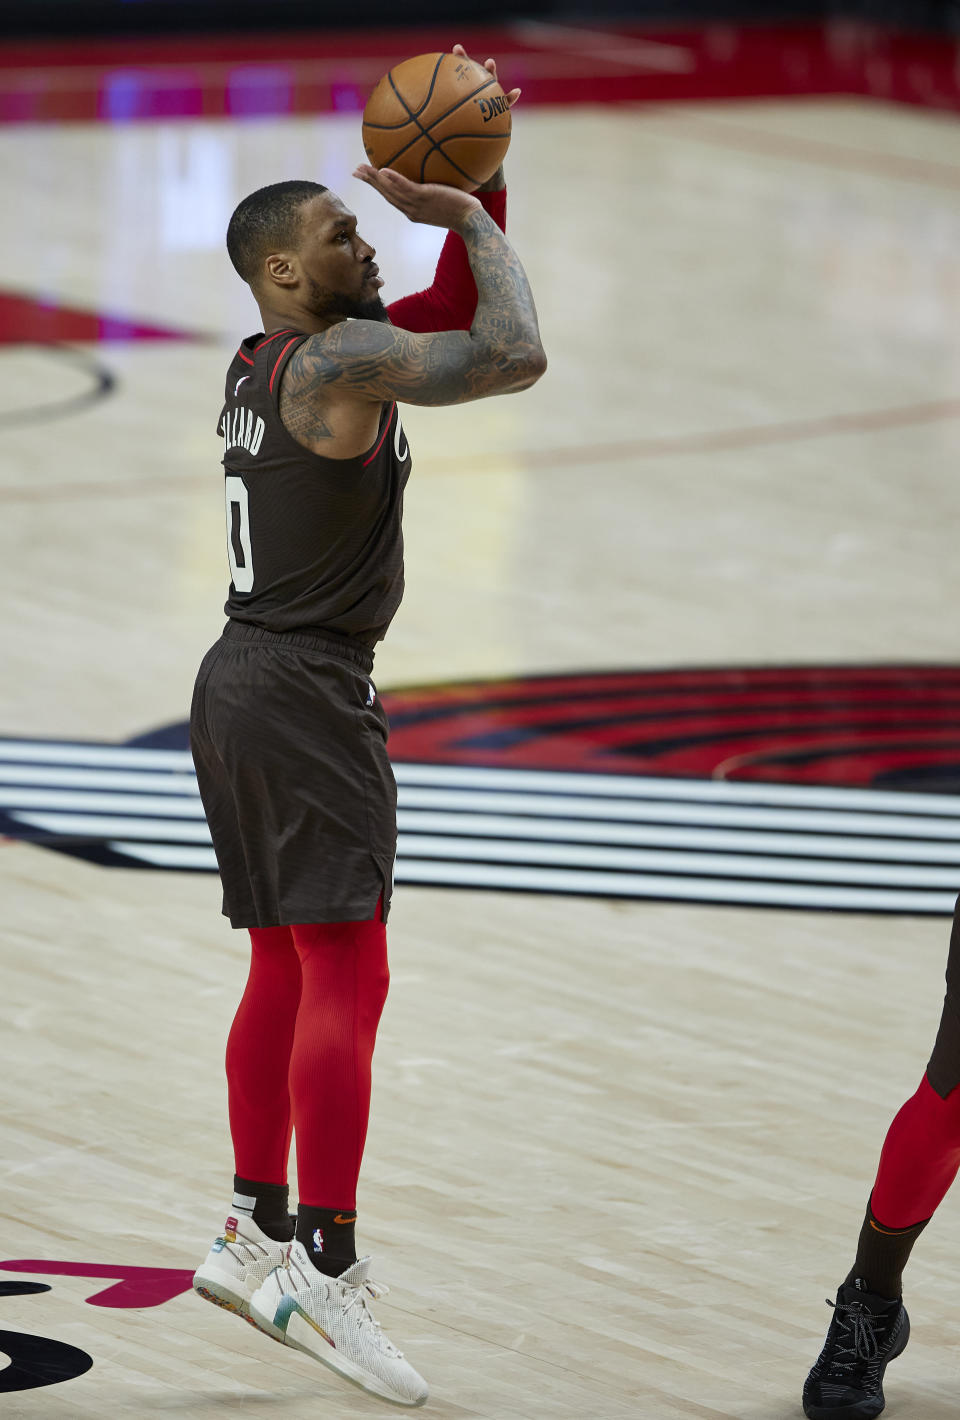 Portland Trail Blazers guard Damian Lillard shoots a 3-pointer against the Golden State Warriors during the second half of an NBA basketball game in Portland, Ore., Wednesday, March 3, 2021. (AP Photo/Craig Mitchelldyer)